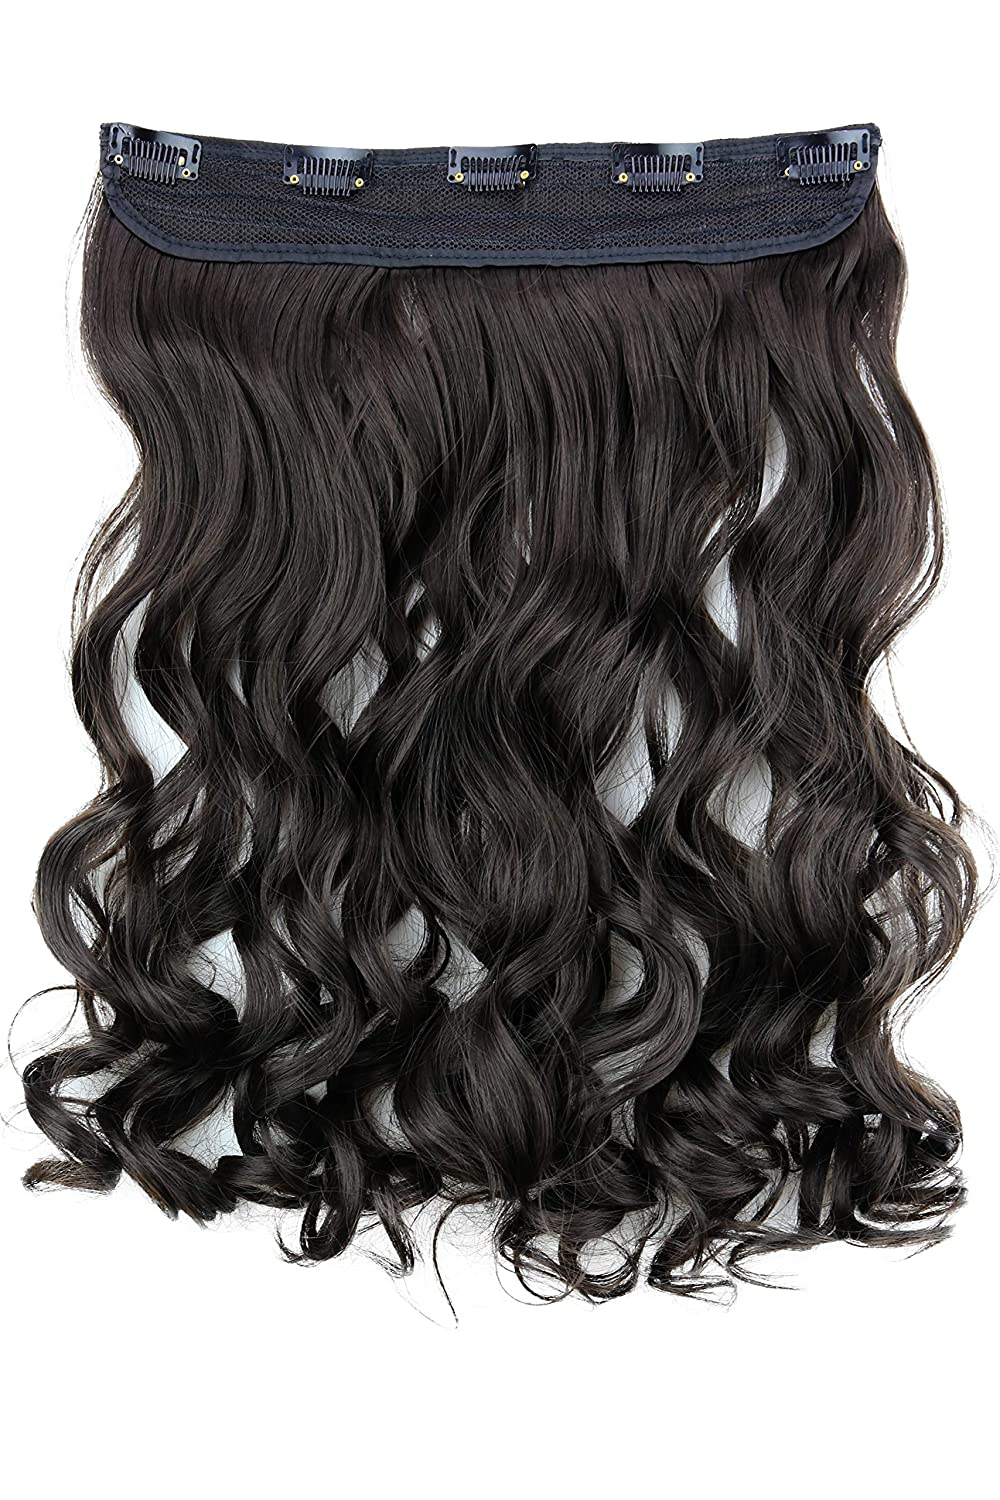 PRETTYSHOP Clip In Hair Extensions Full Head One Piece Hairpiece Wavy Heat-Resisting 22 brown #8 C53-1